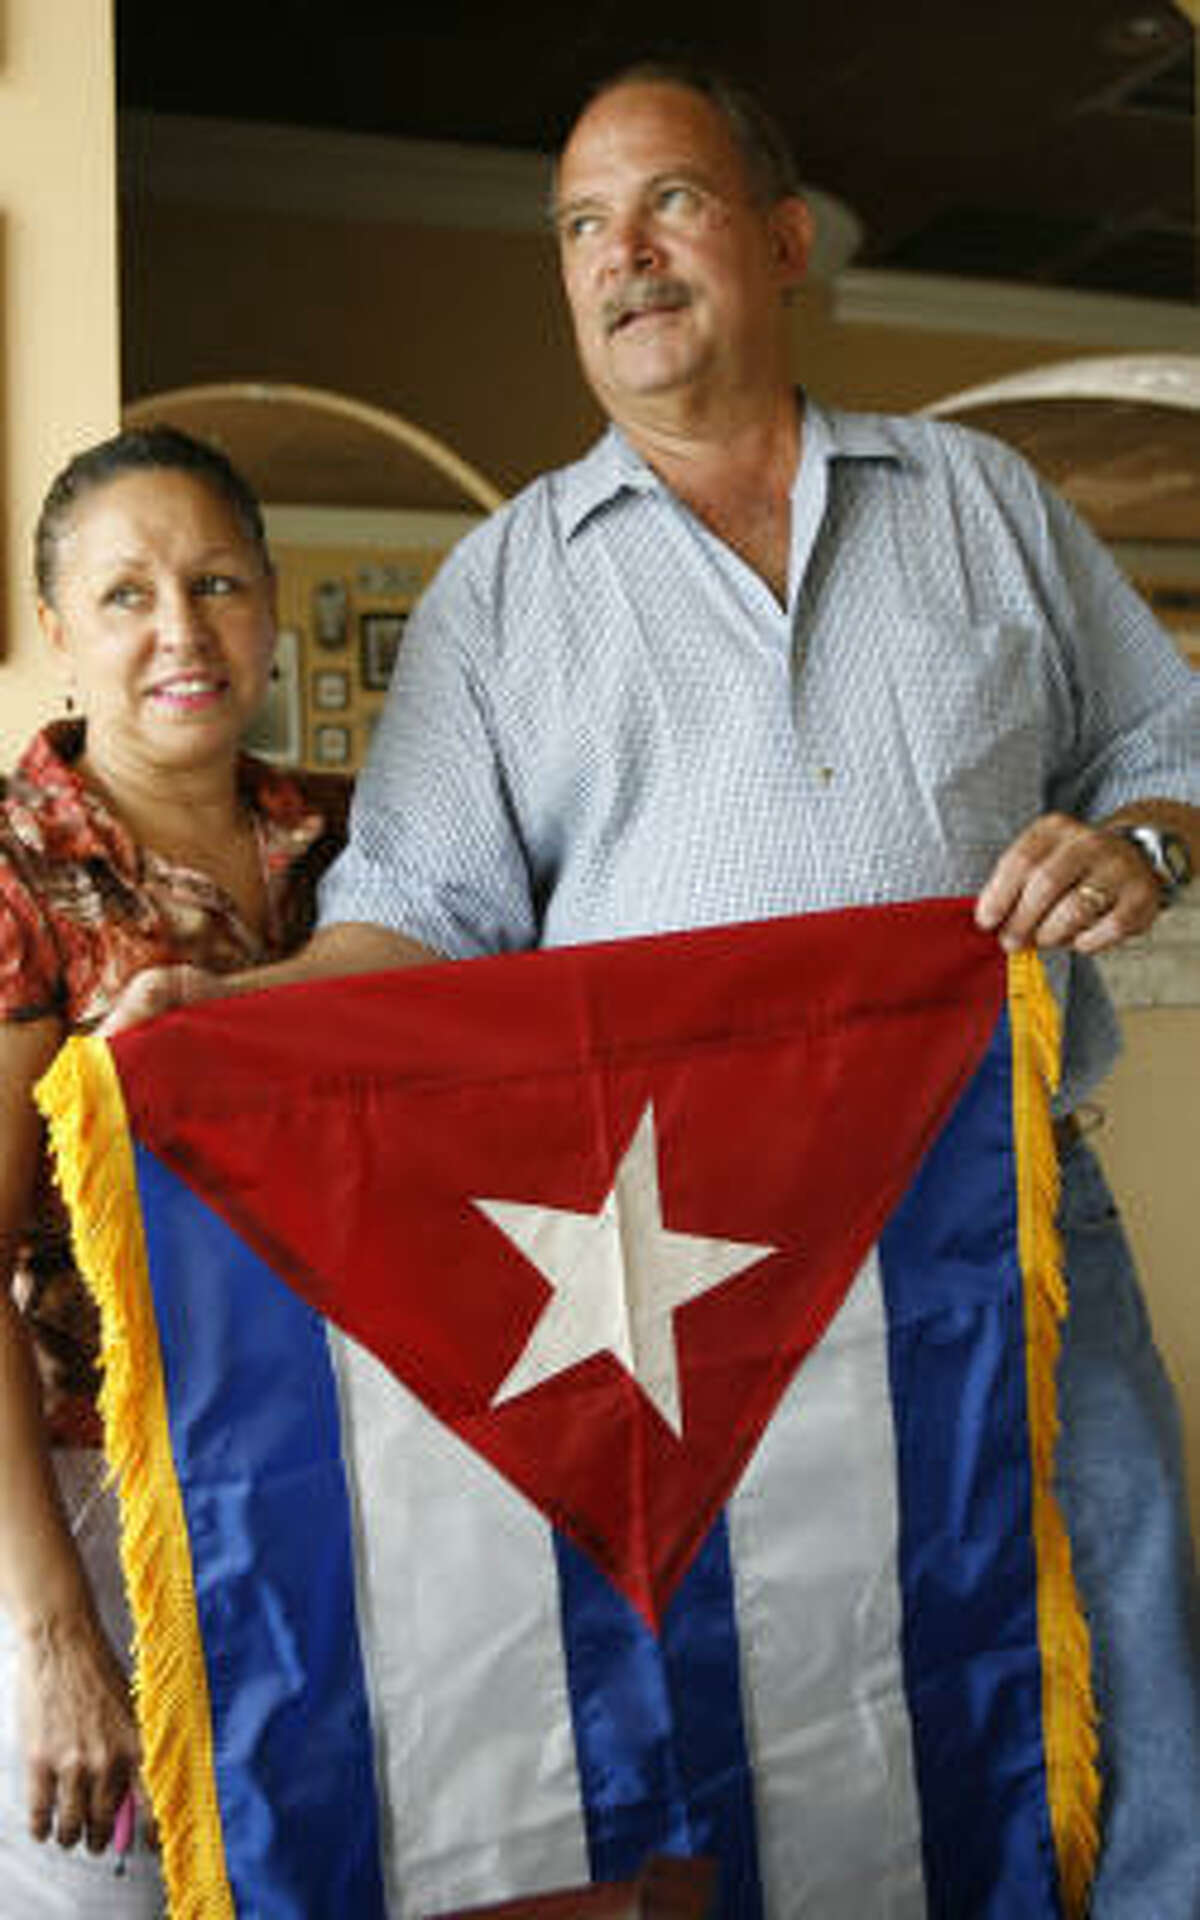 A file photo of the late Guido Piquet, right, owner of Cafe Piquet on Bissonnet, and his wife, Nelly, holding a Cuban flag that was given to them several years ago. Click through to see photos from Fidel Castro's 2015 visit to Houston.